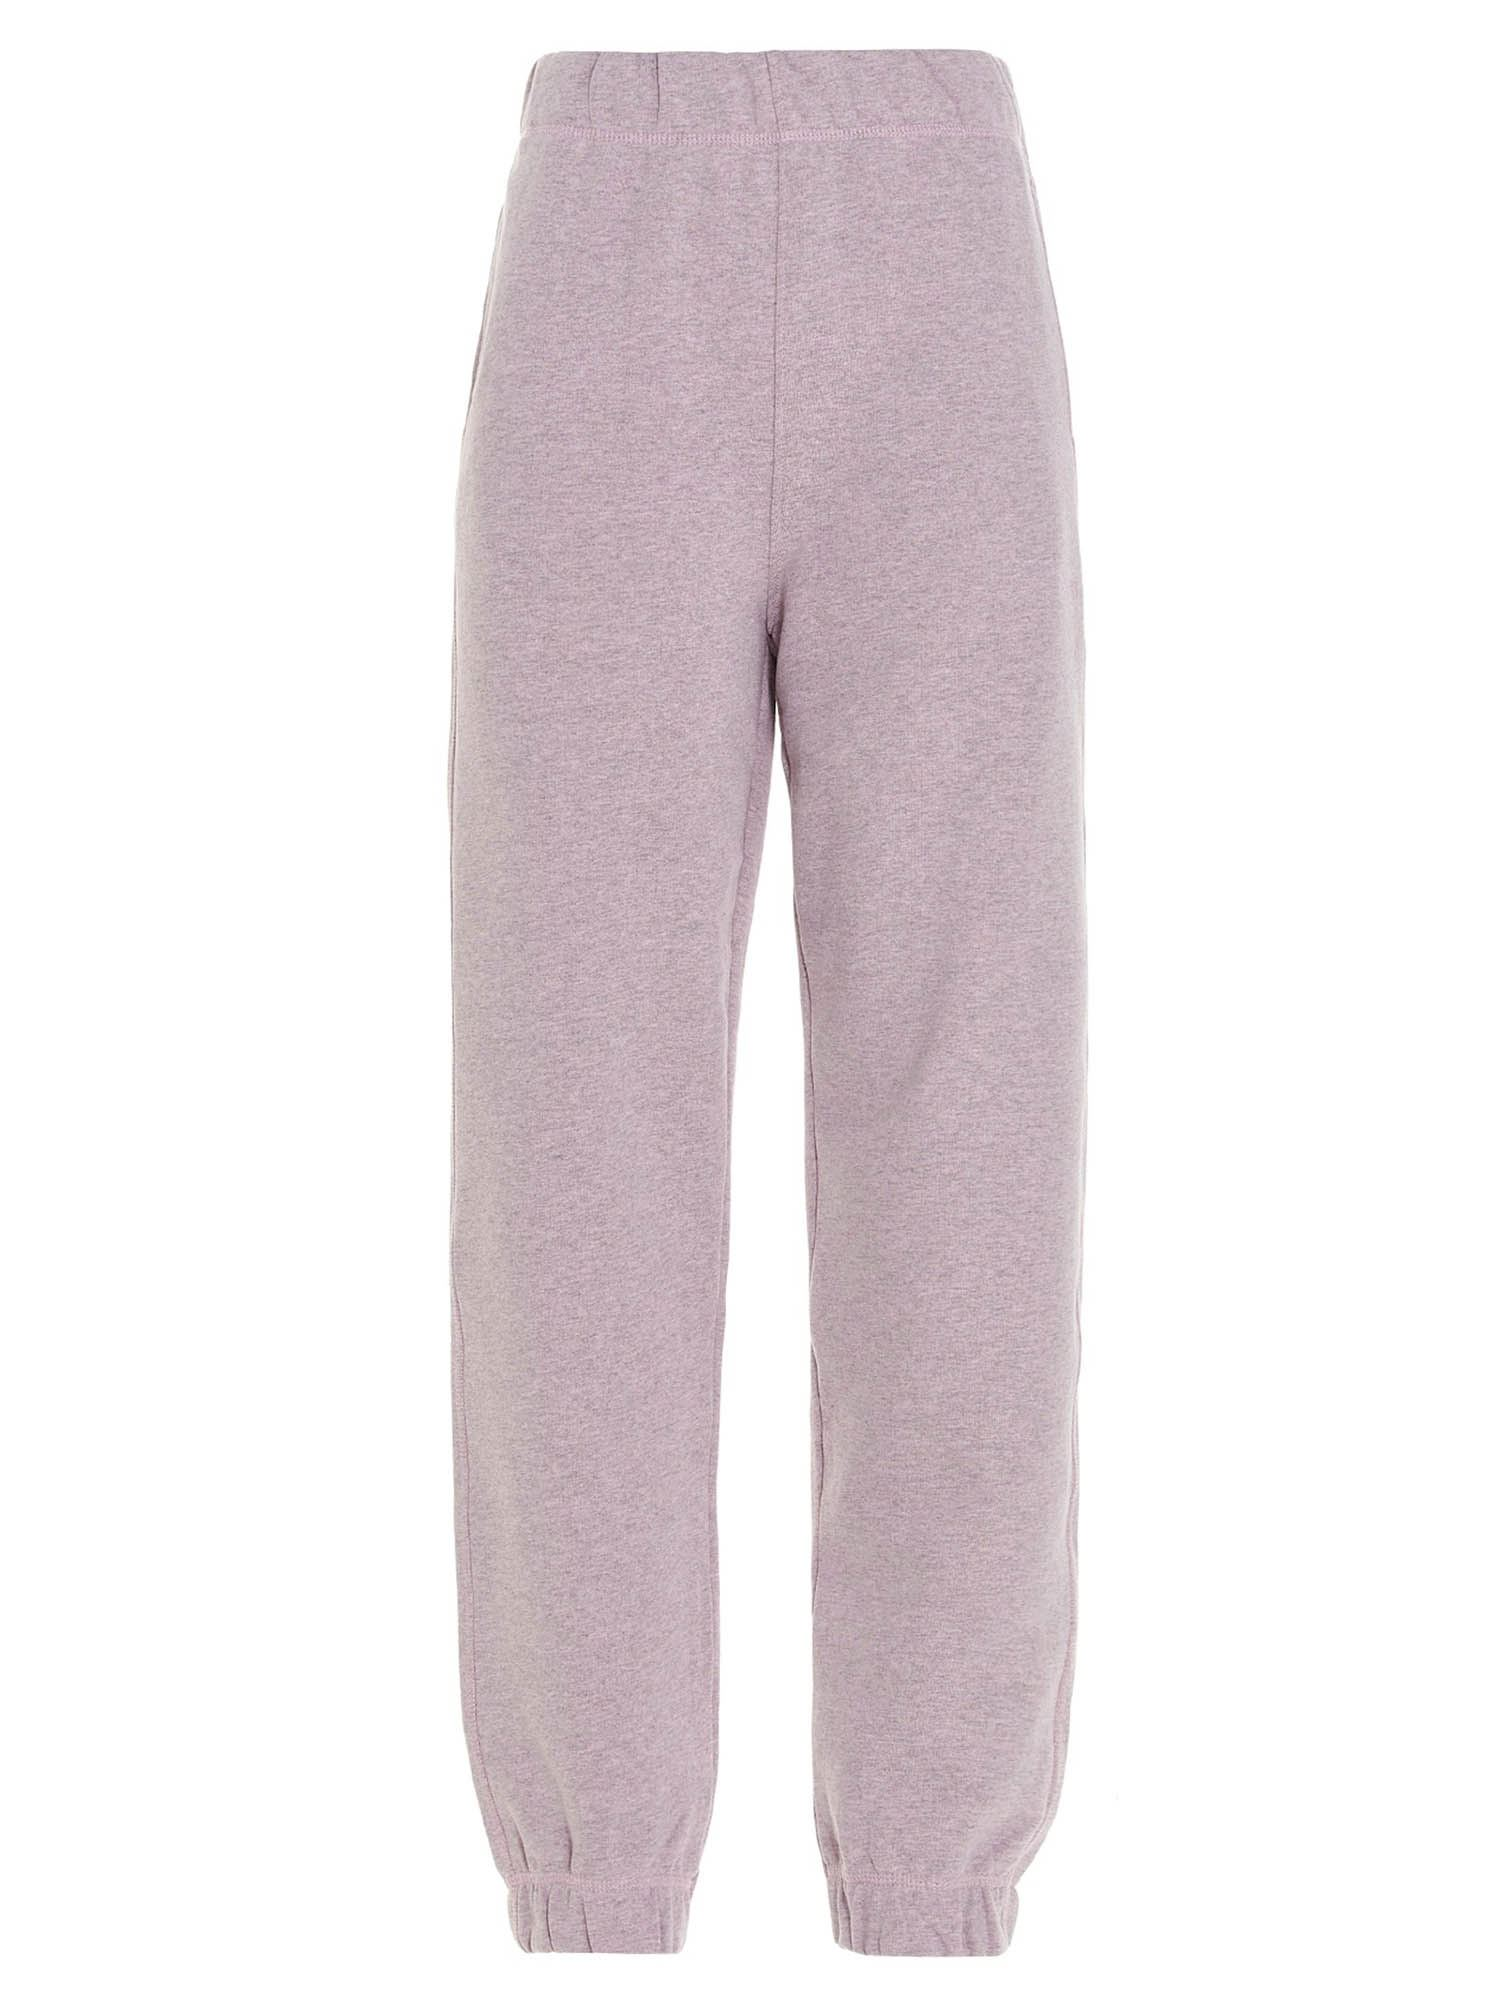 GANNI ISOLI ELASTICATED WAIST PANTS IN LILAC